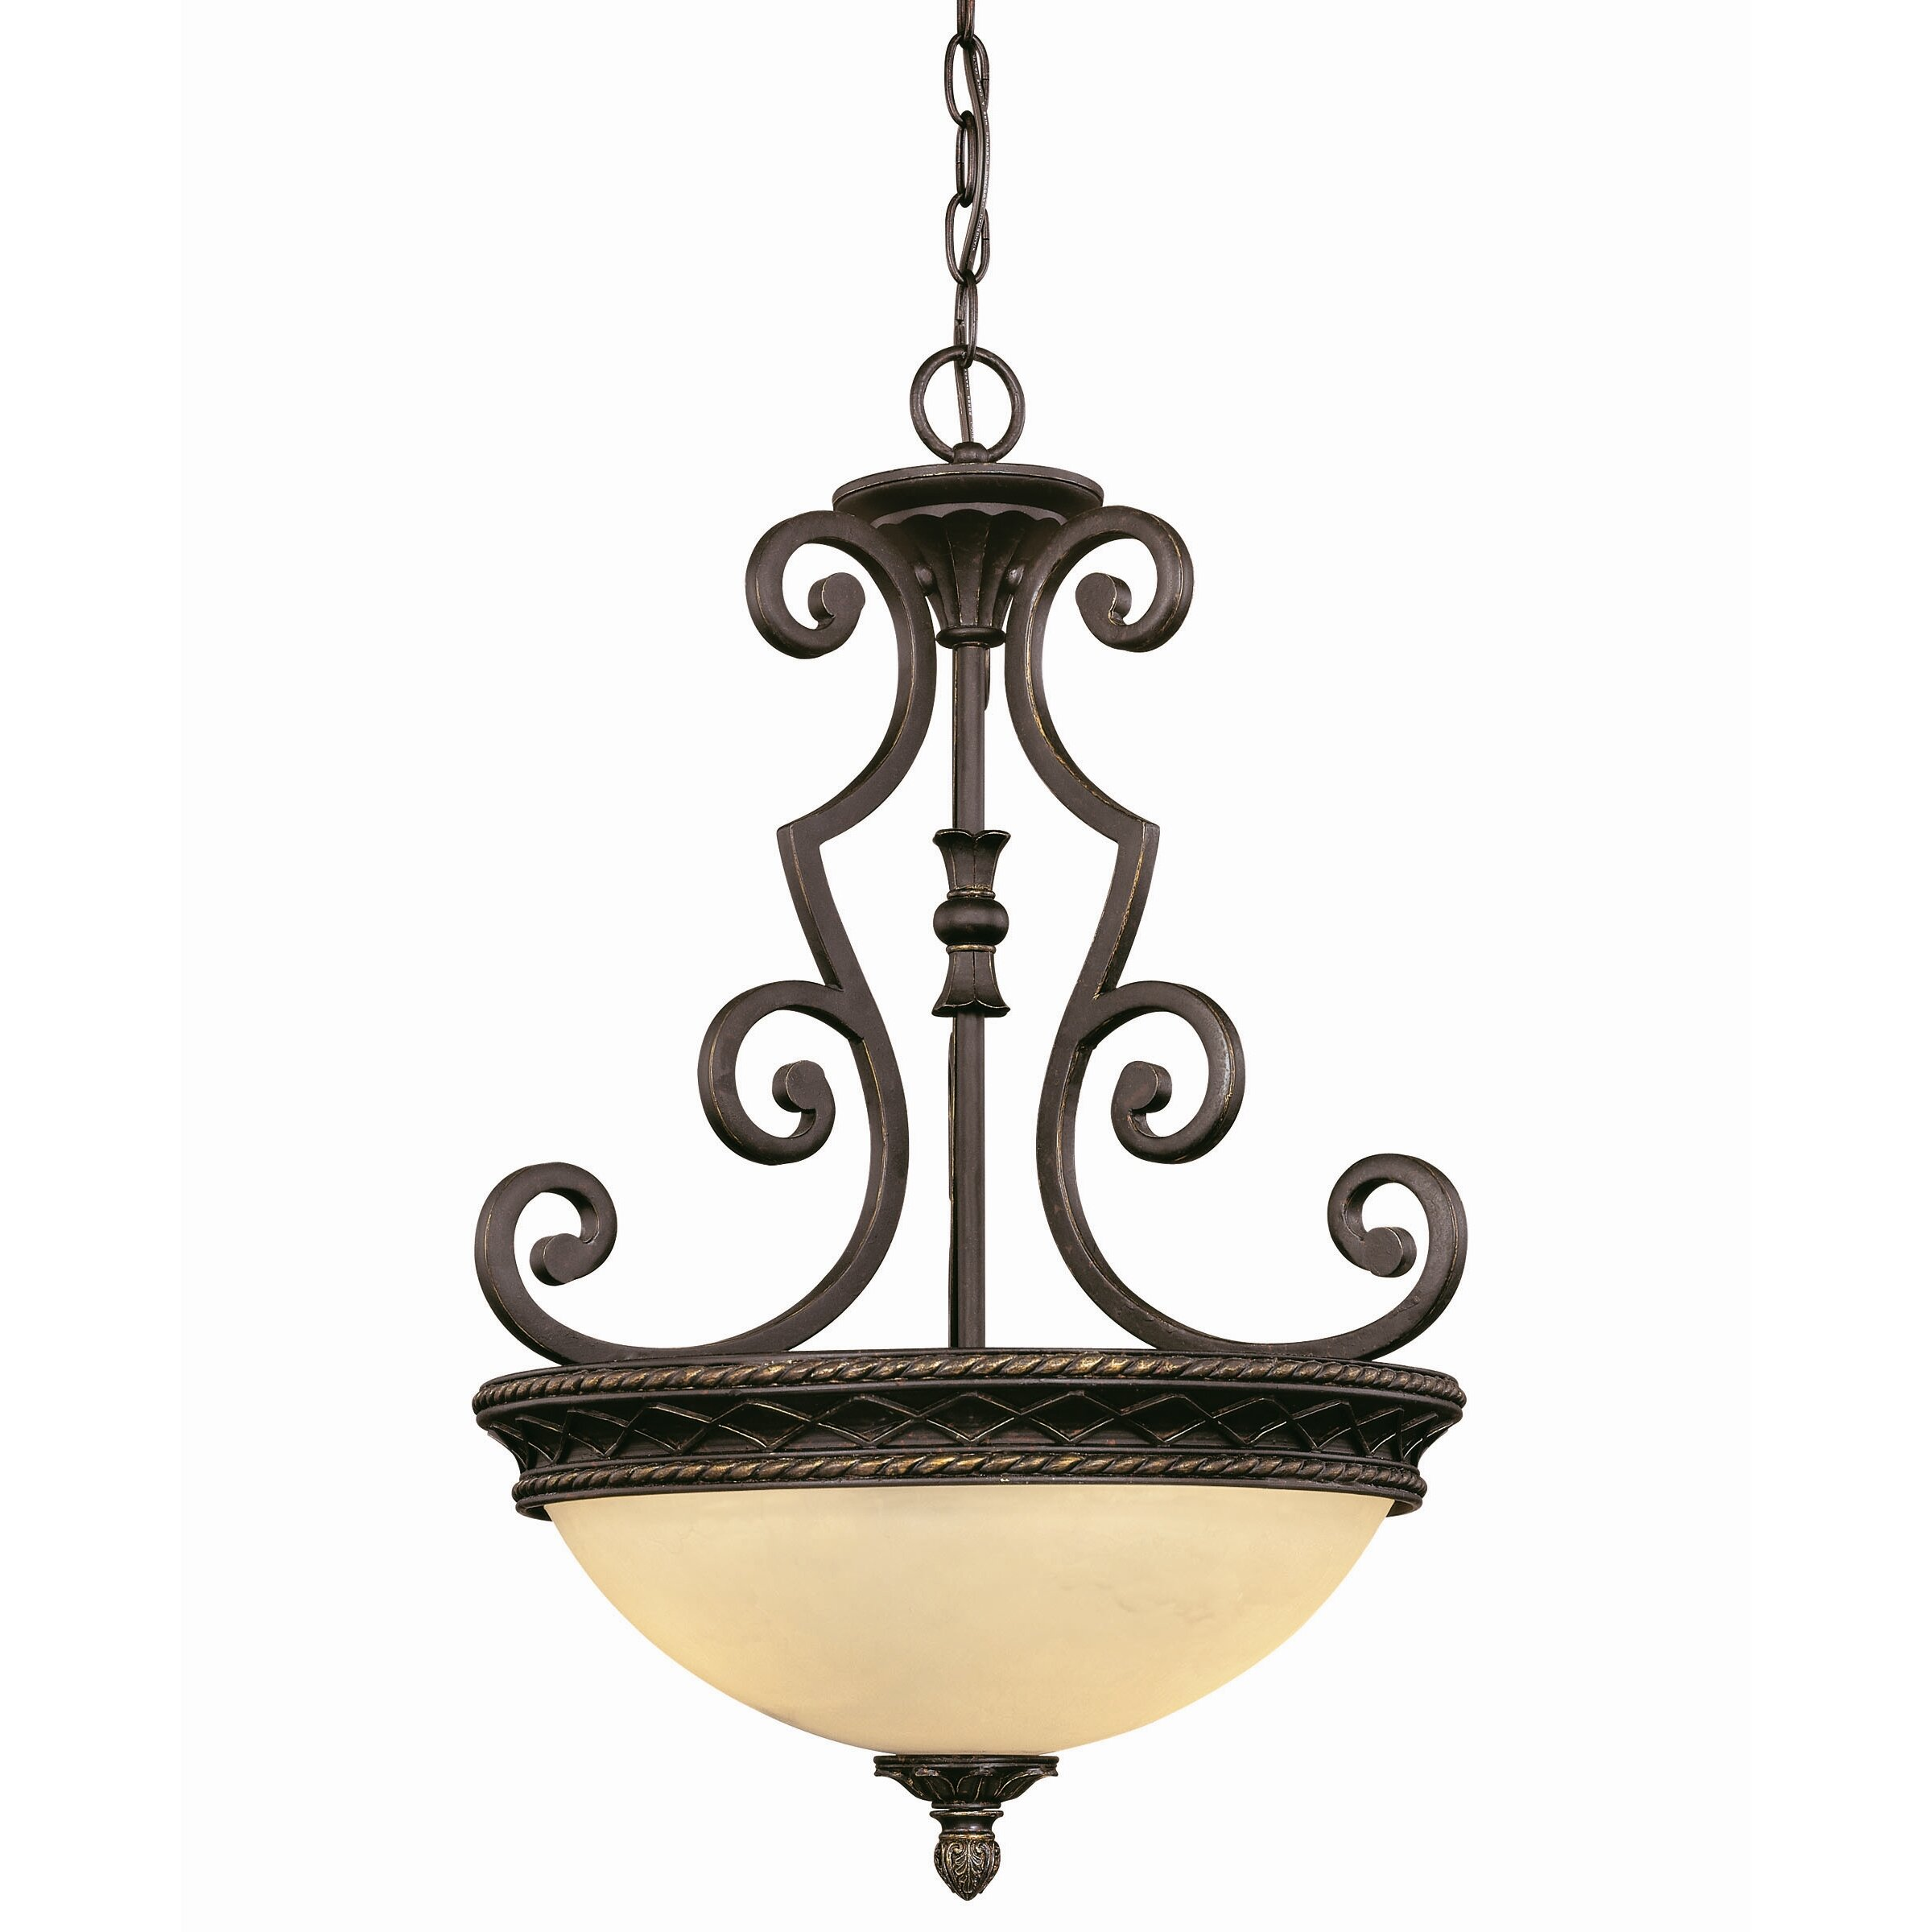 knight 2 light bowl inverted pendant by savoy house. Black Bedroom Furniture Sets. Home Design Ideas